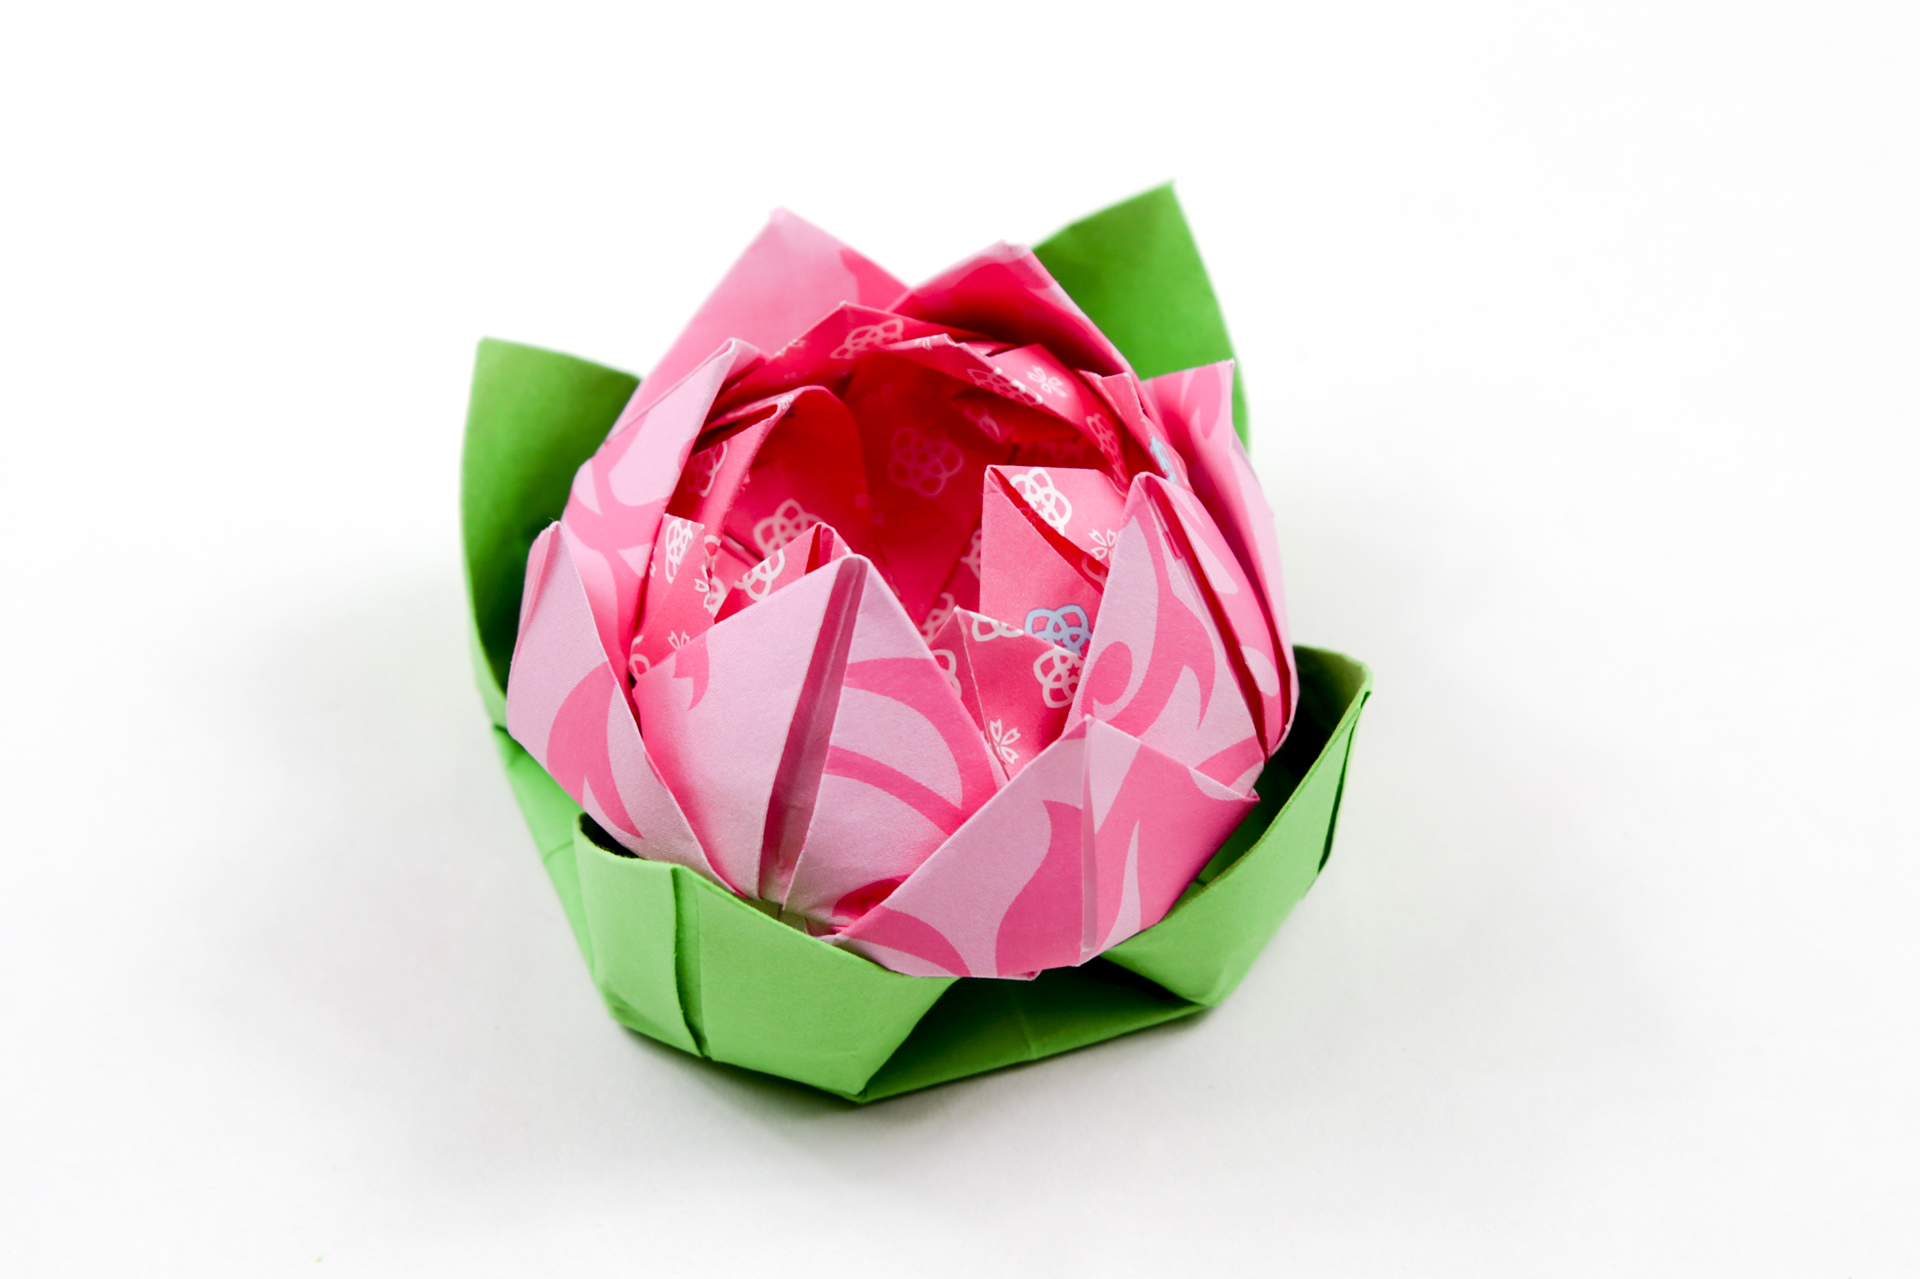 Incredible Origami Lotus Flower - Instructions & Video Tutorial | 1279x1920